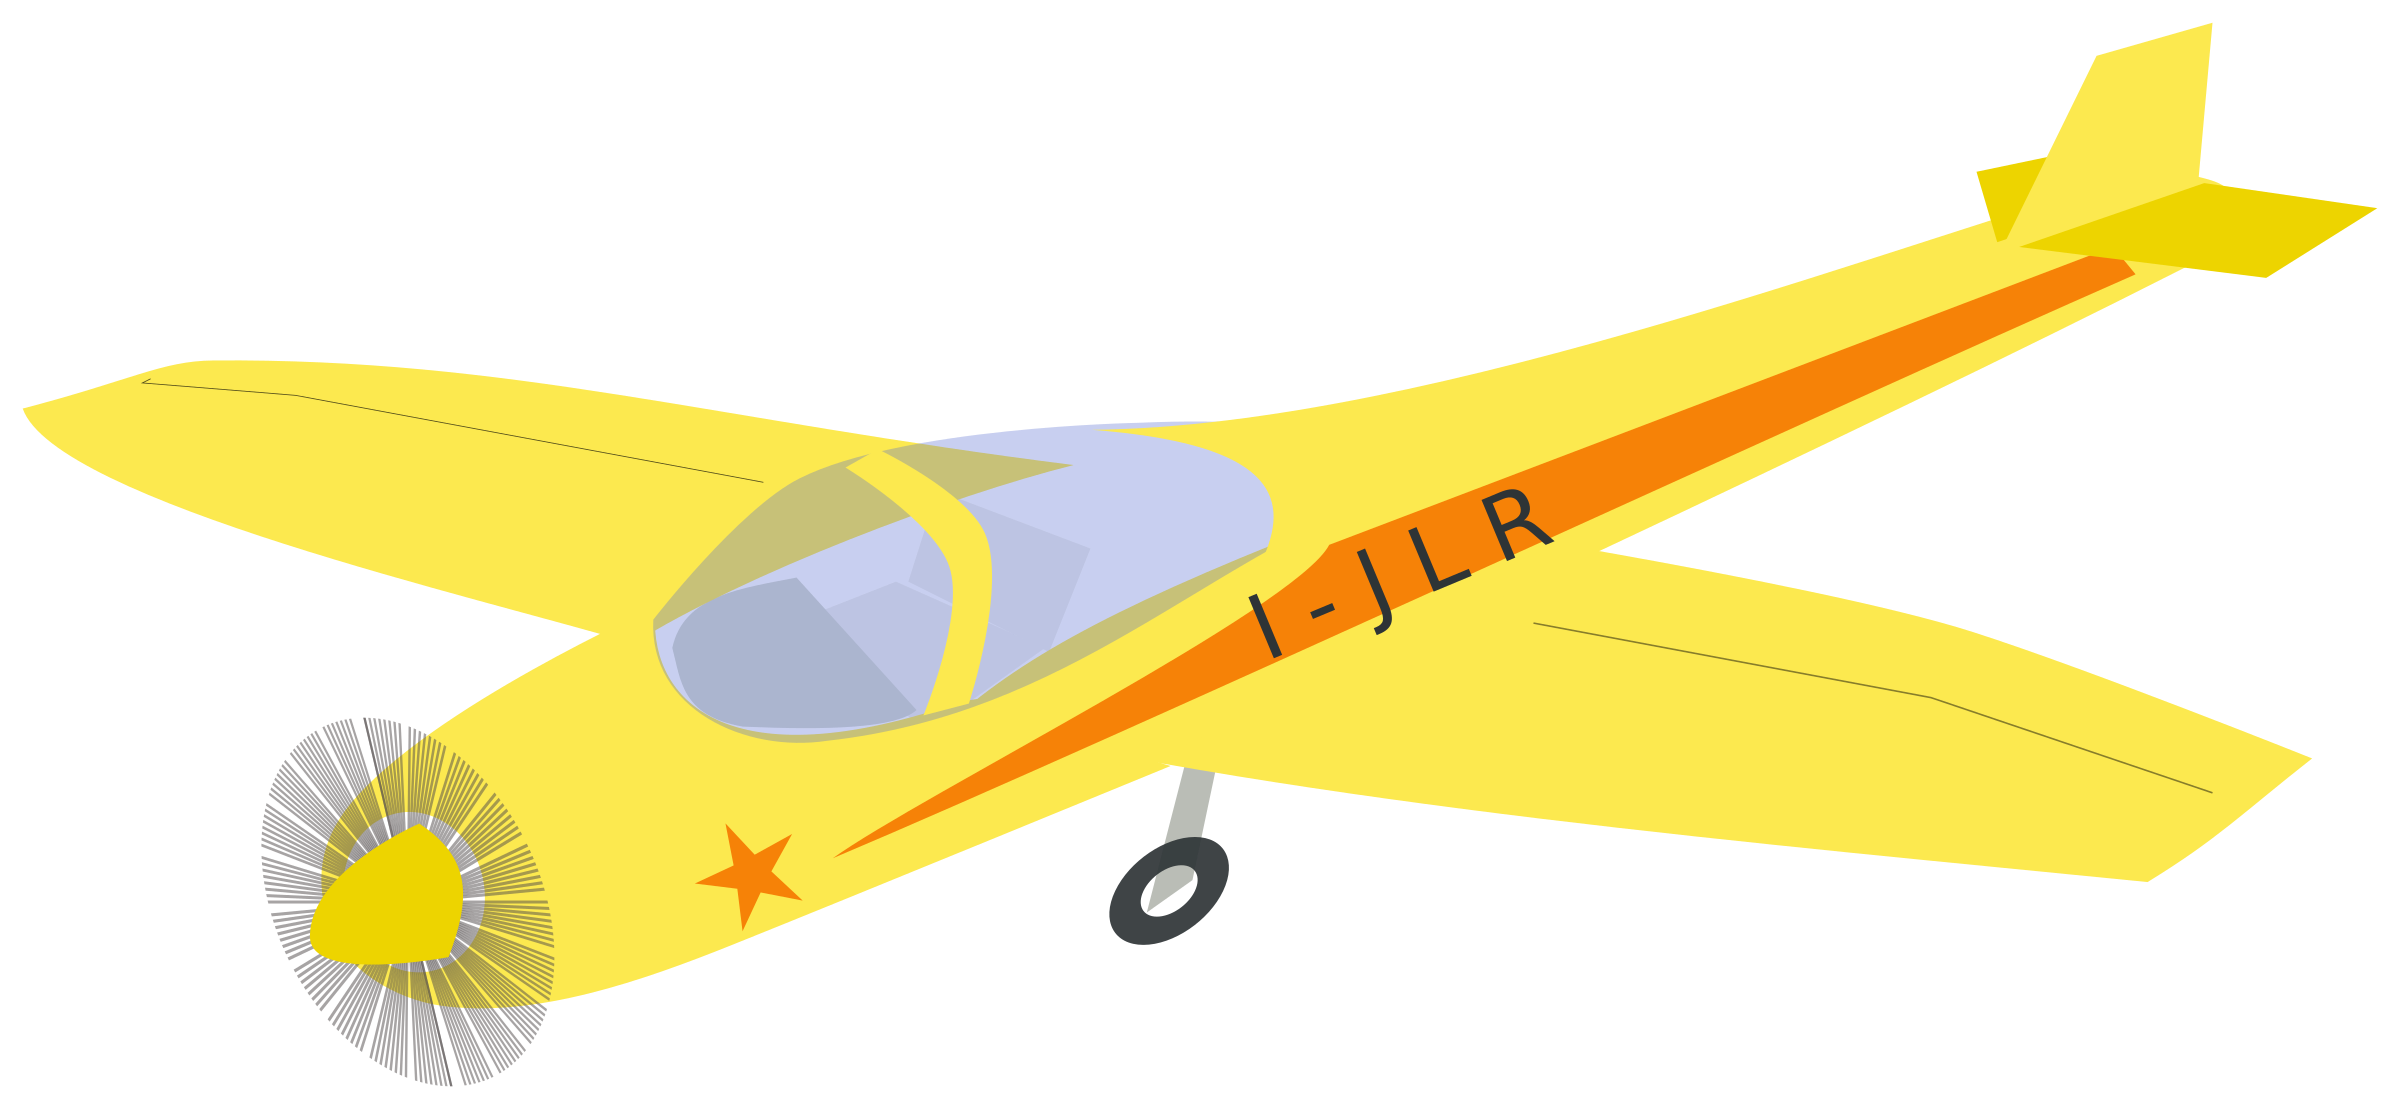 Jodel Plane by chatard